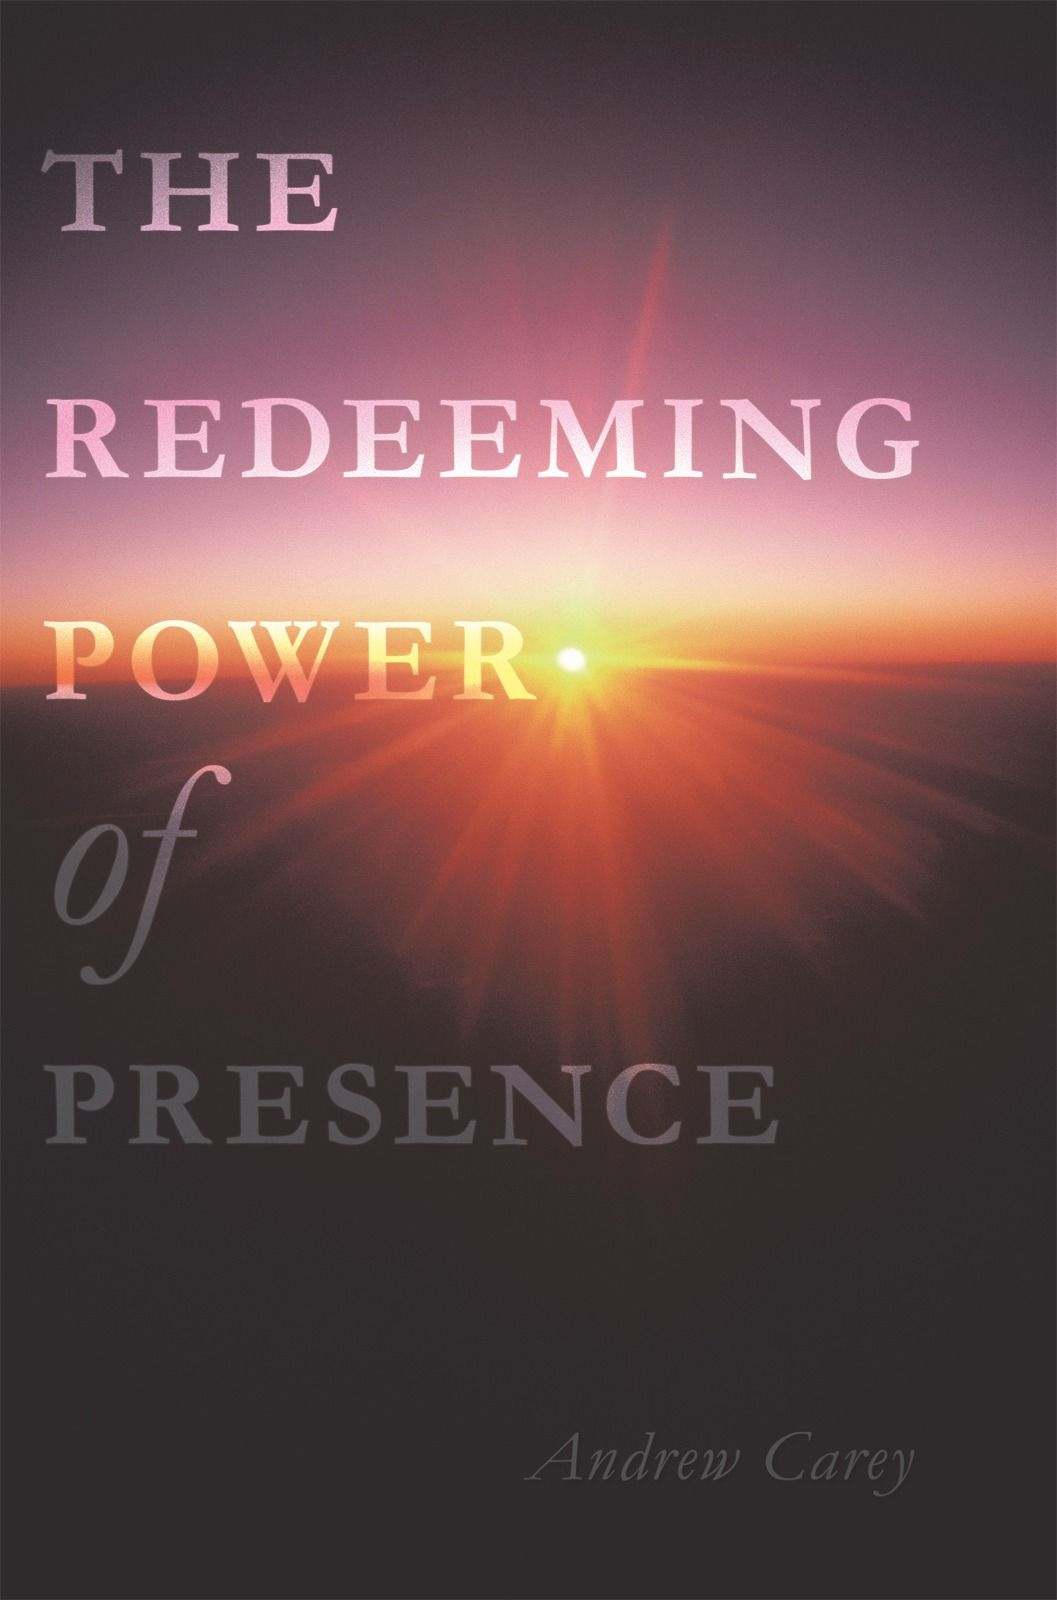 The Redeeming Power Of Presence By: Andrew Carey